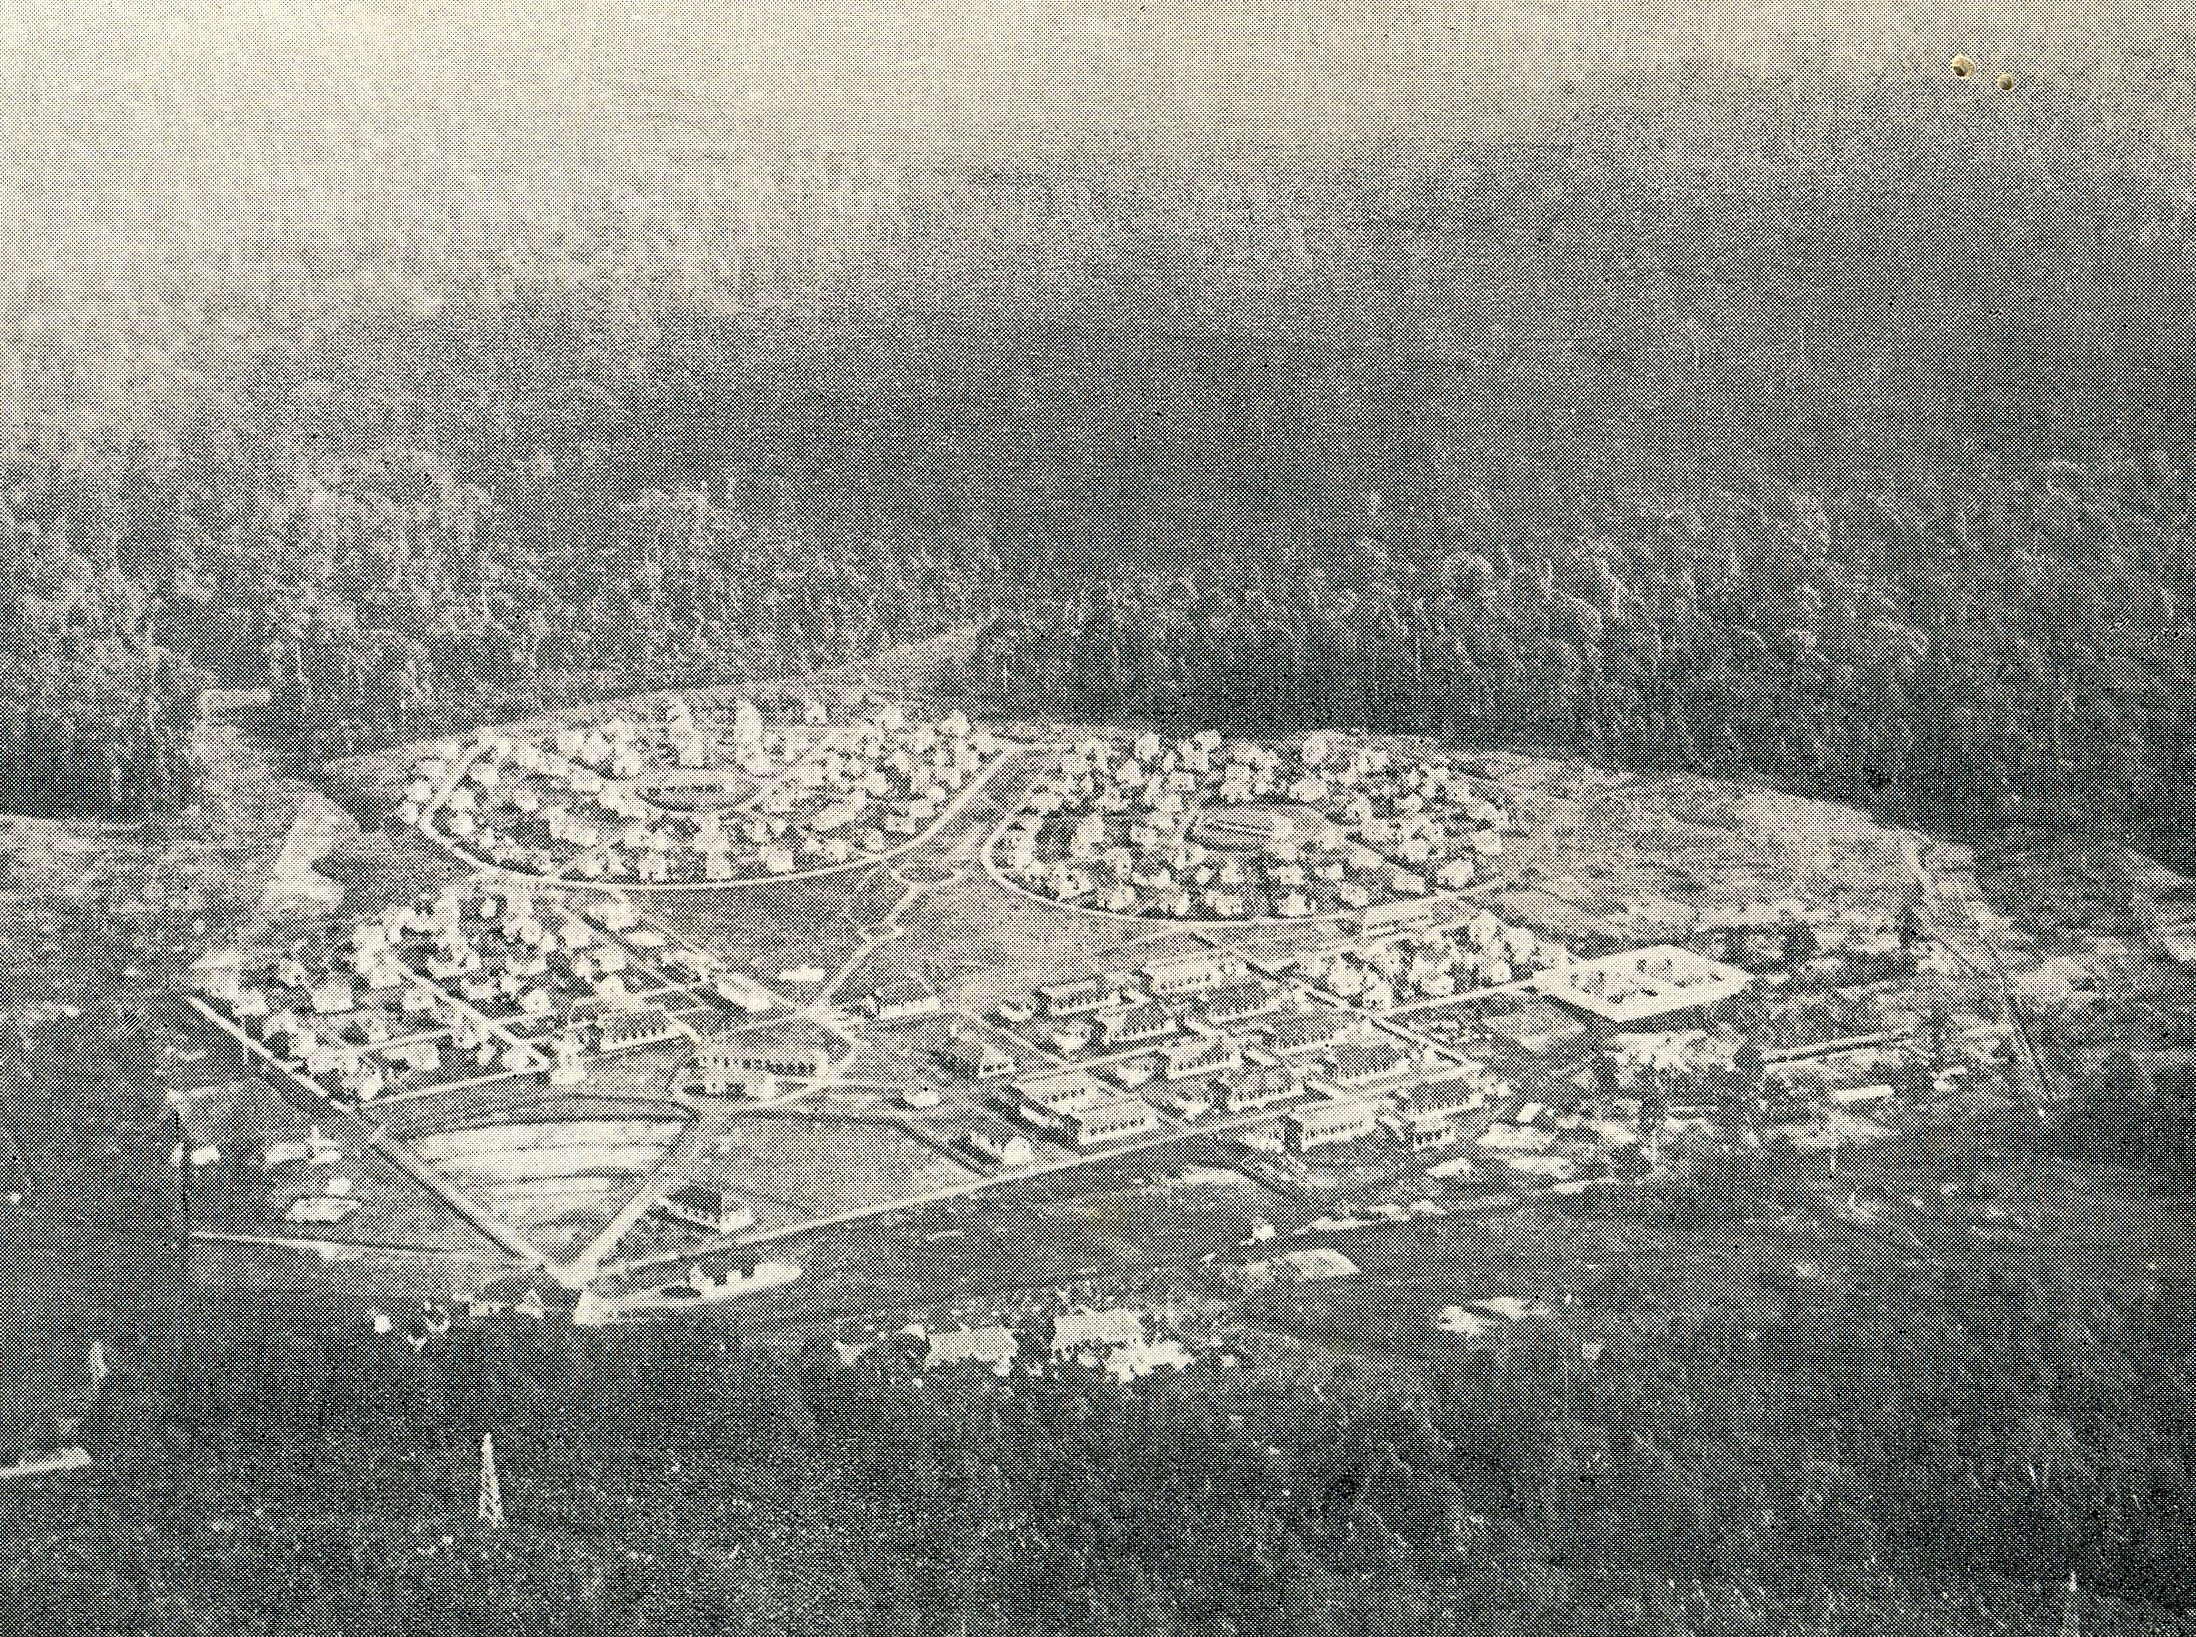 Aerial view of the Valley of Hope in the 1930s. (photo courtesy of Sungai Buloh Settlement Council)